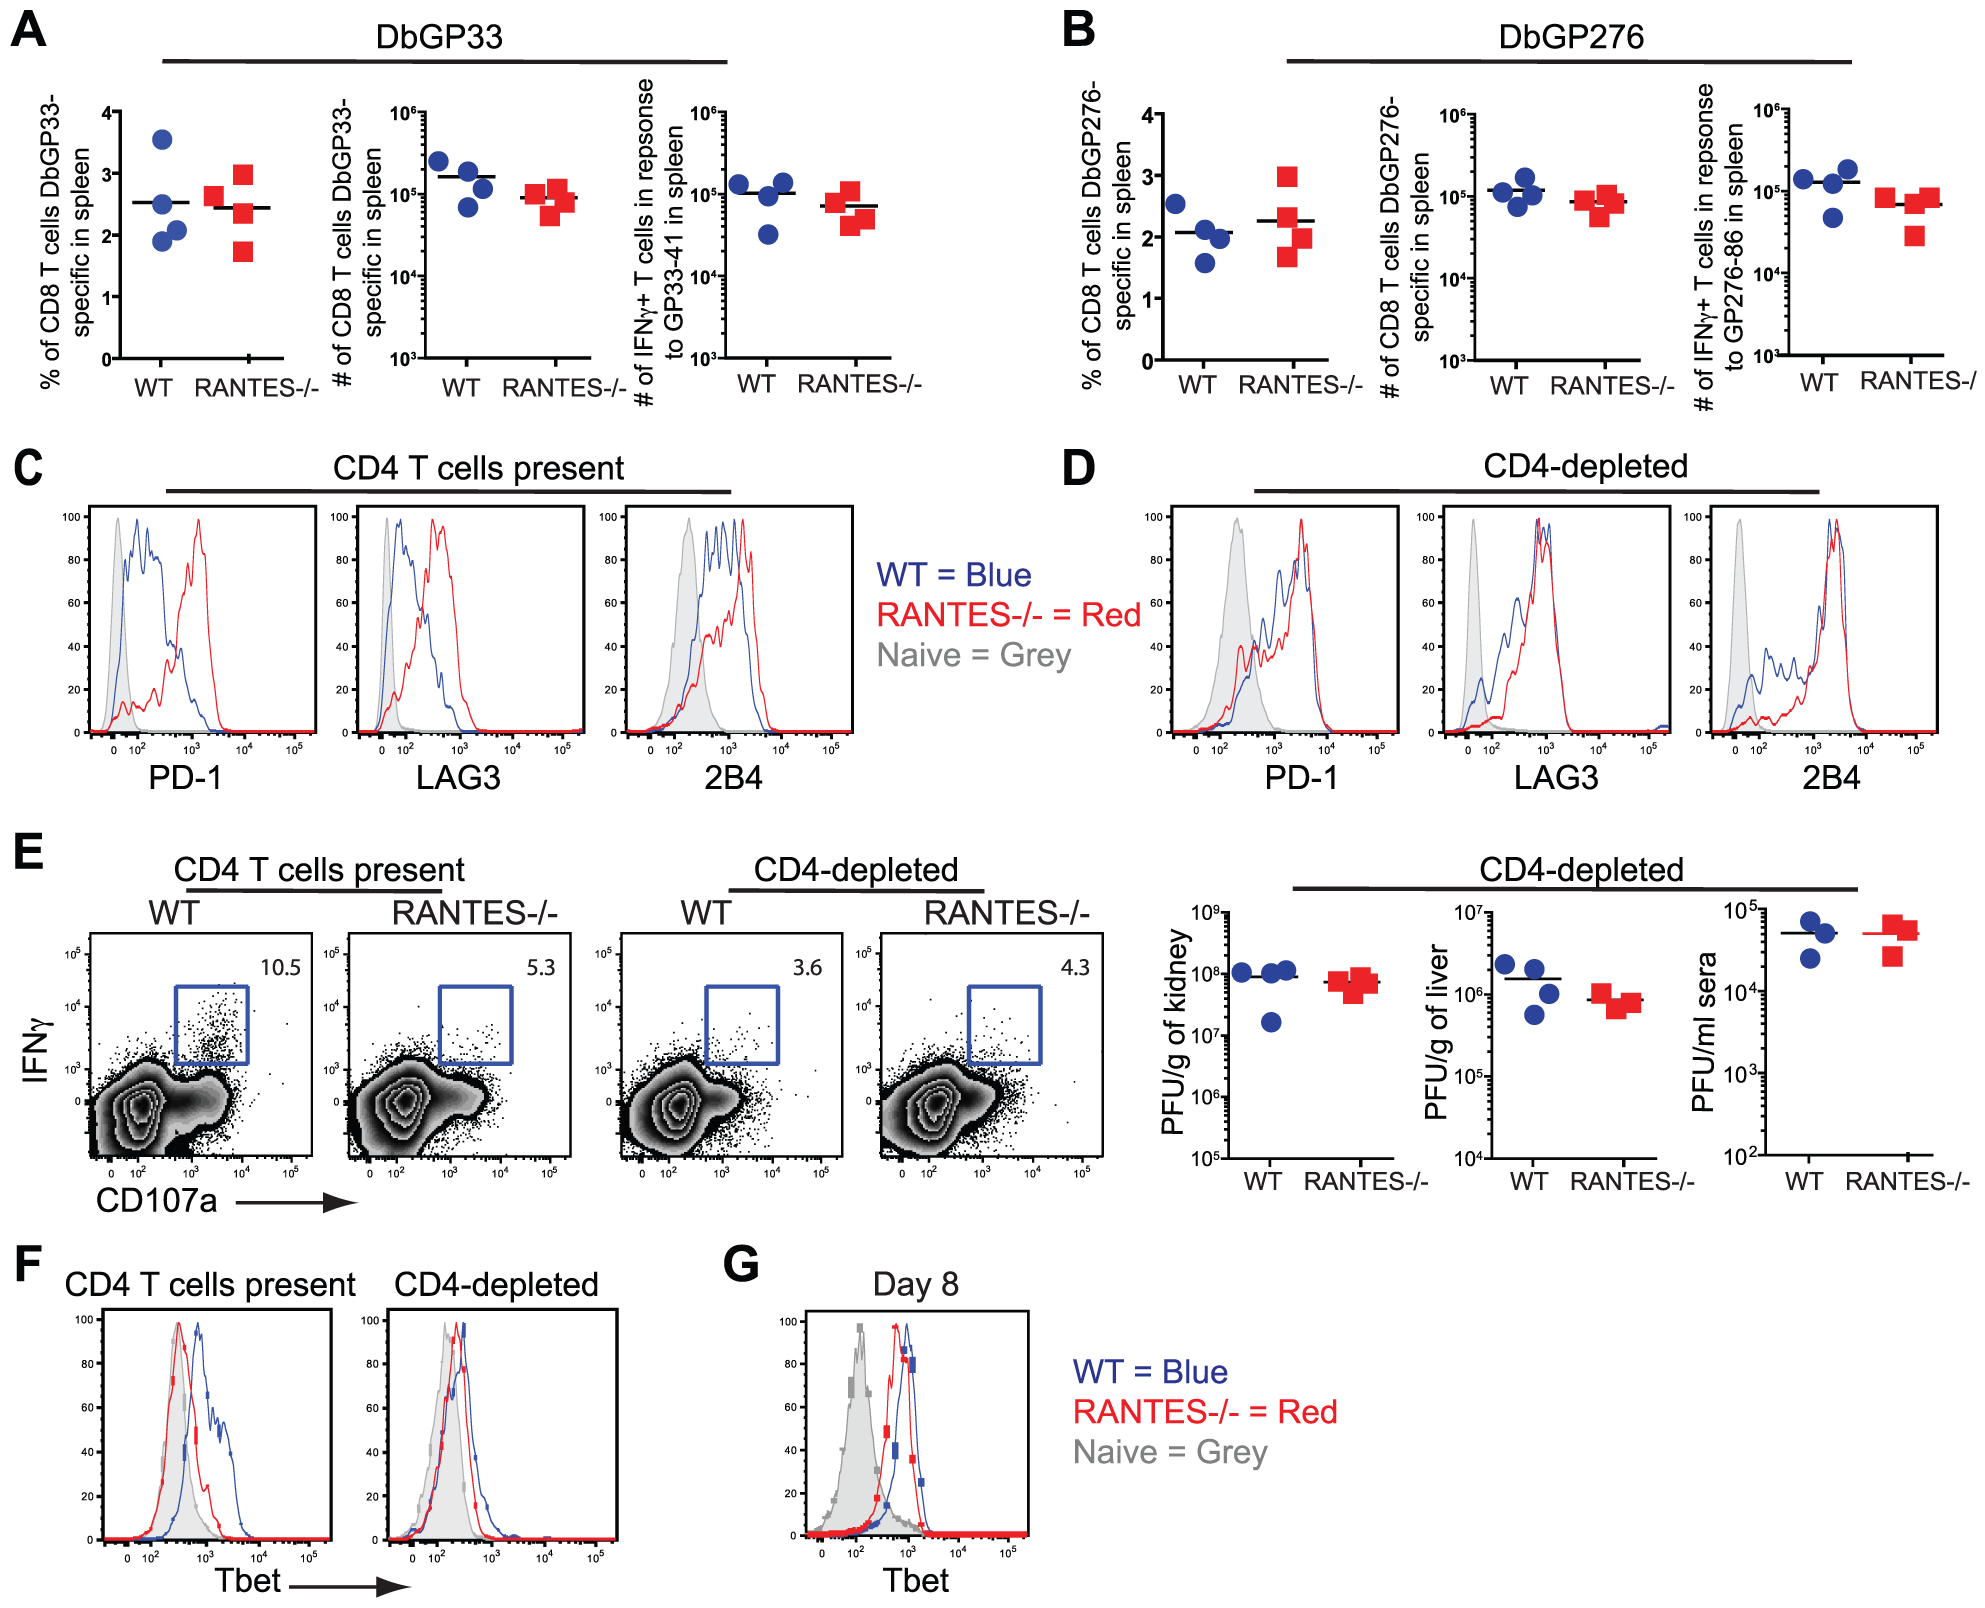 CD4-depletion reduces Tbet and IFNγ production in WT mice similar to levels seen in RANTES<sup>−/−</sup> mice.